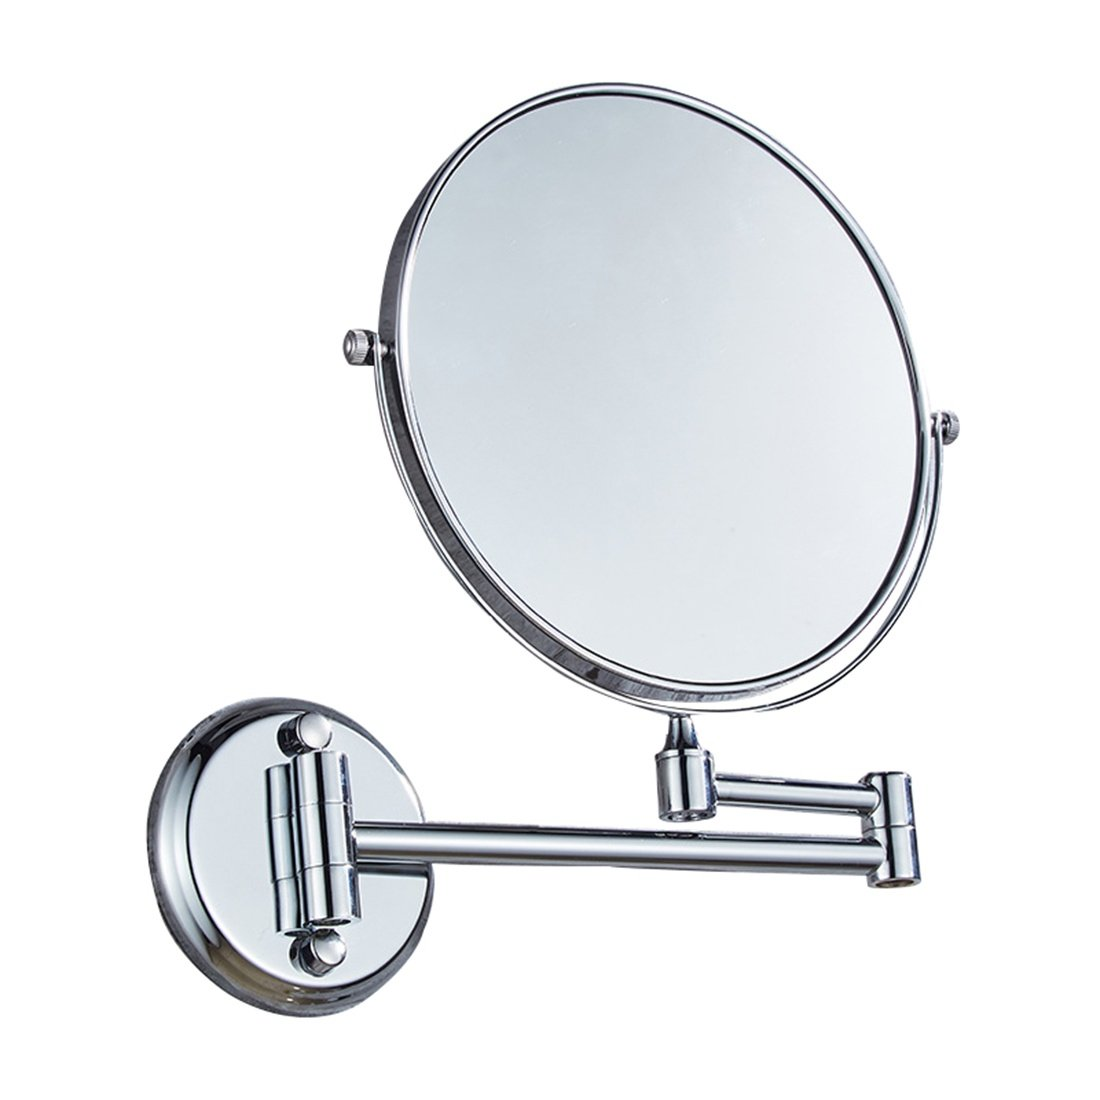 Ysayc Vanity Mirror Double-sided 3x Magnification Wall Mounted Hanging 360° Swivel Bath Spa Hotel Round Bathroom Cosmetic Mirror wall-mounted-mirrors, Silver